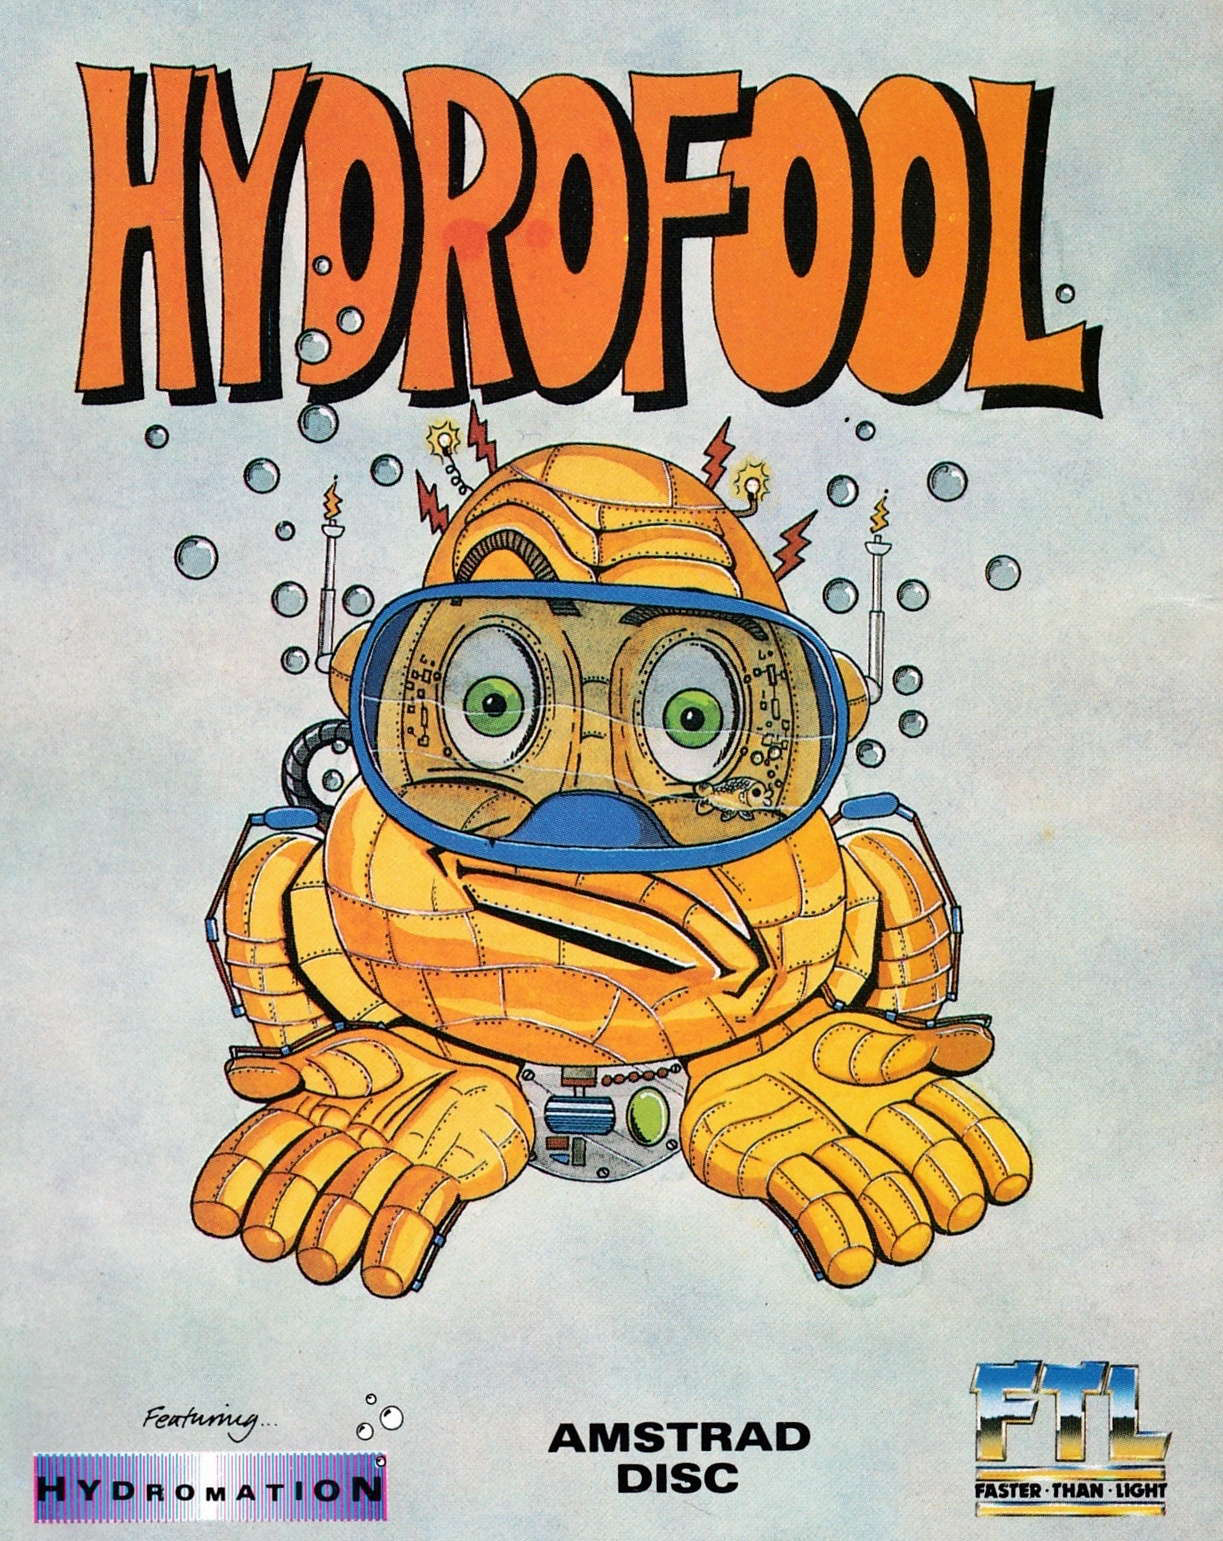 cover of the Amstrad CPC game Hydrofool  by GameBase CPC